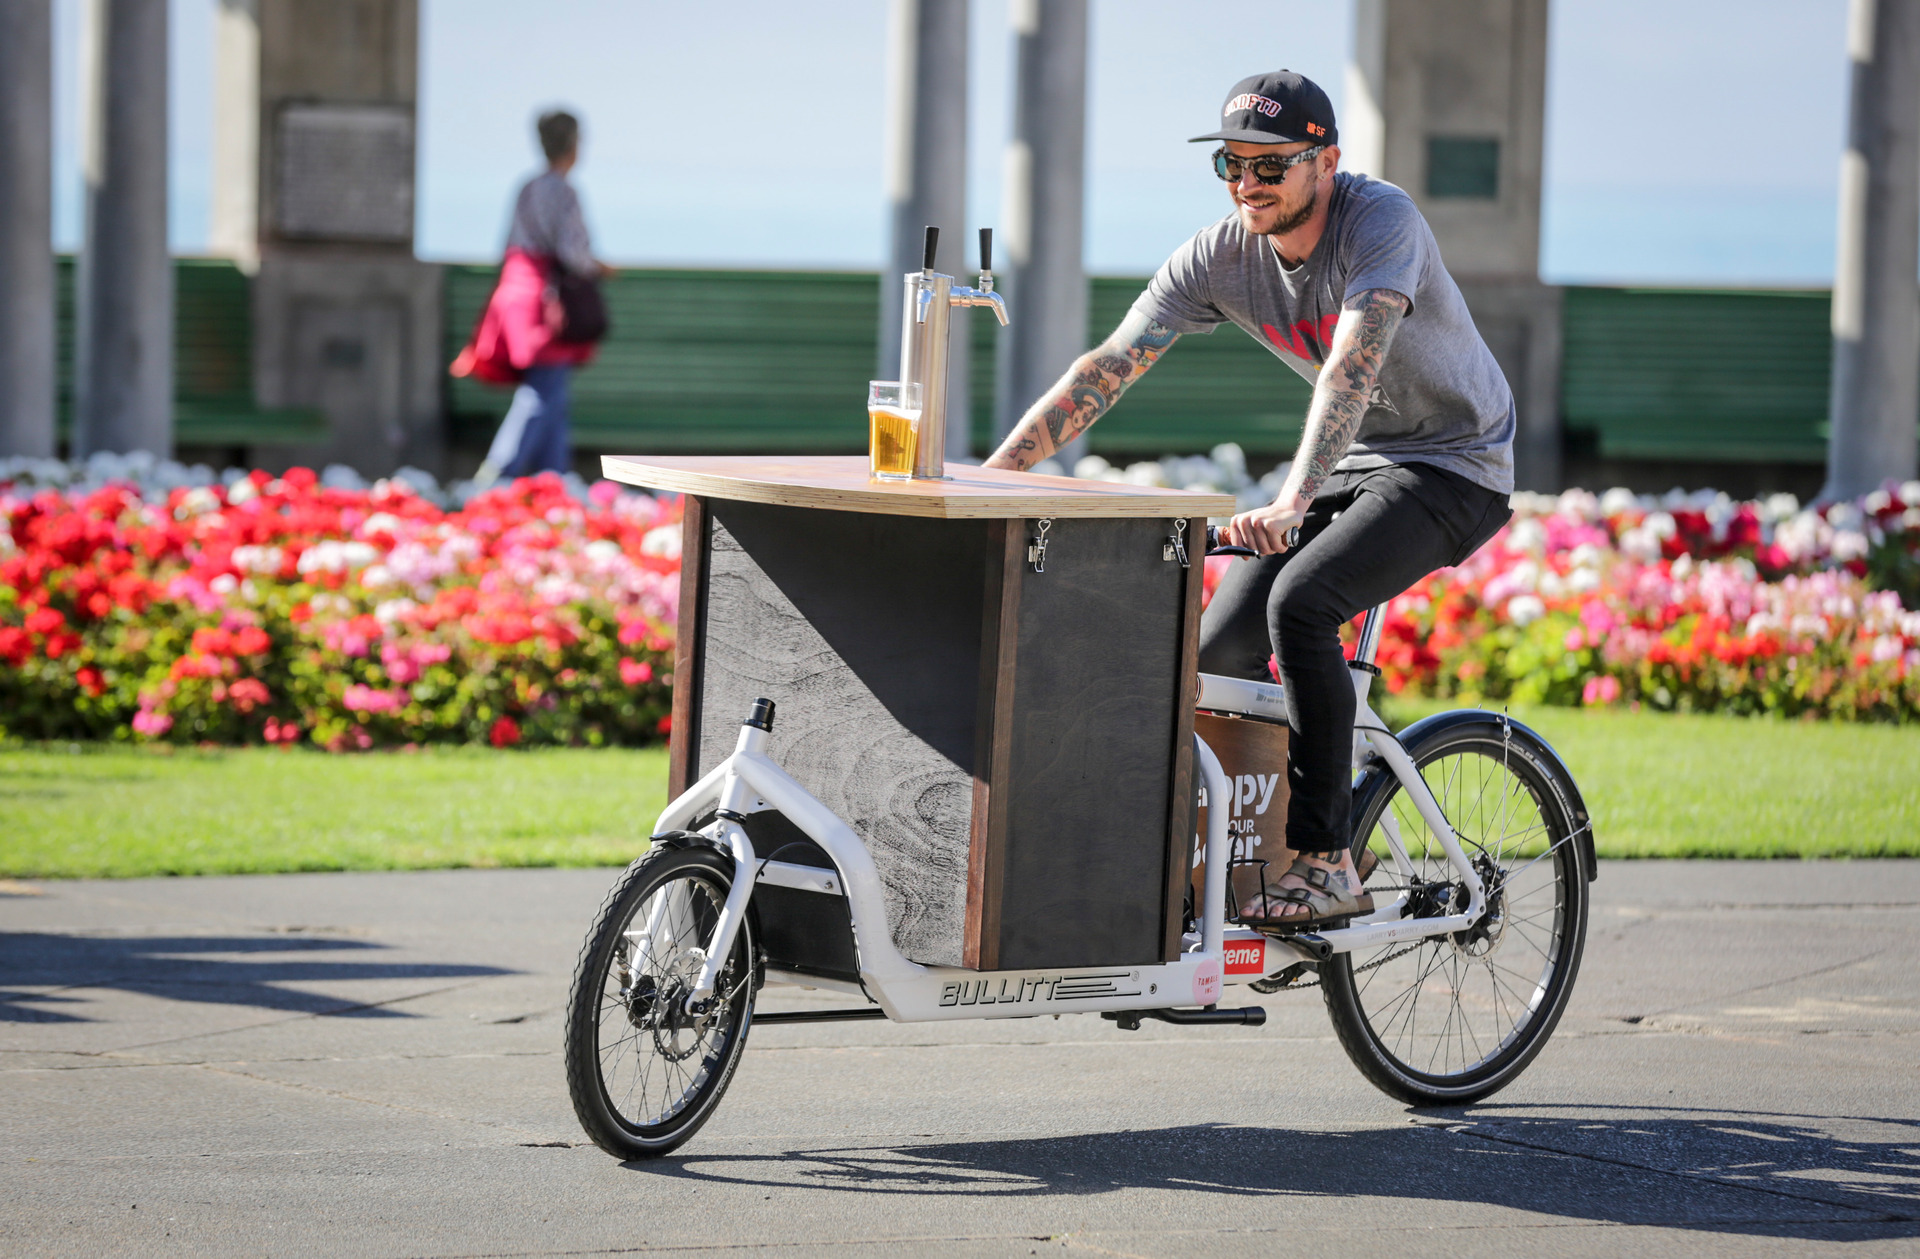 Happy hour beer bike rides into Napier's CBD to save everyone's after work drinks